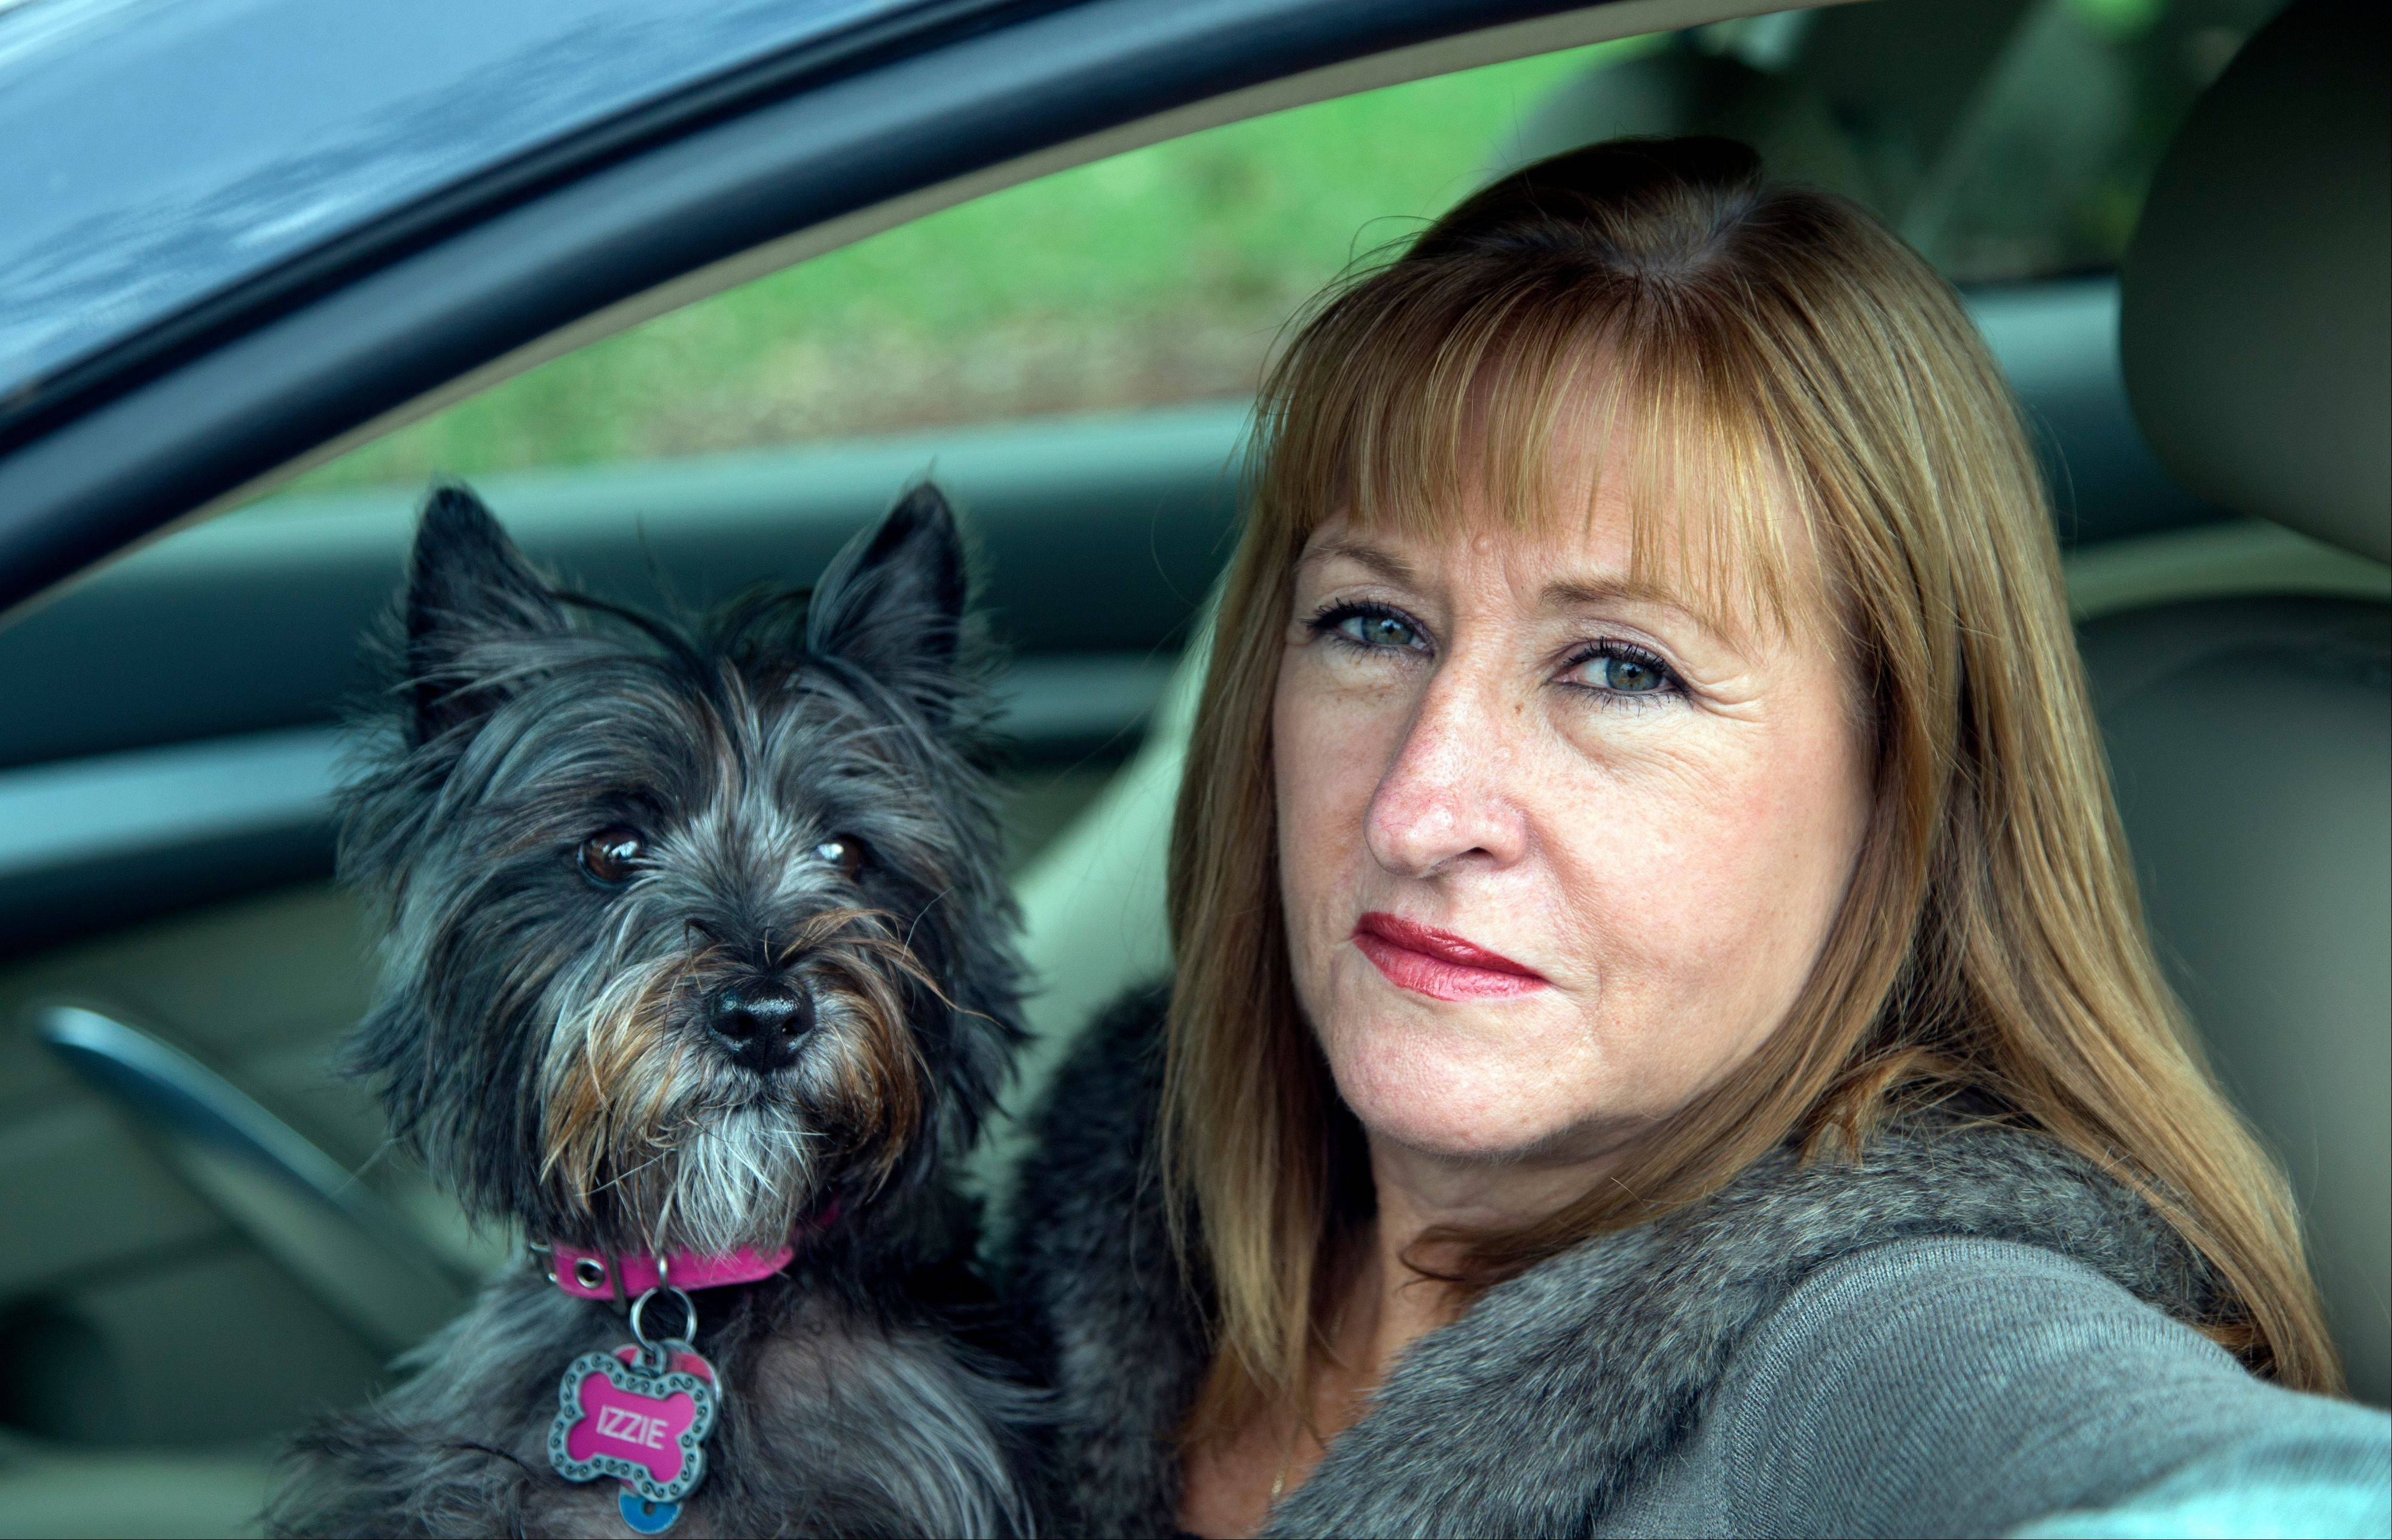 "In this photo taken Nov. 2, 2012, Diane Spitaliere and her pet dog Izzie sit in her car outside her house in Alexandria. Baby boomers, that giant population bubble born between 1946 and 1964, started driving at a young age and became more mobile than any generation before or since. Spitaliere, a 58-year-old who recently retired after working 38 years at the Federal Aviation Administration, said the idea of moving to a retirement or assisted living community ""is just very unappealing to me."""